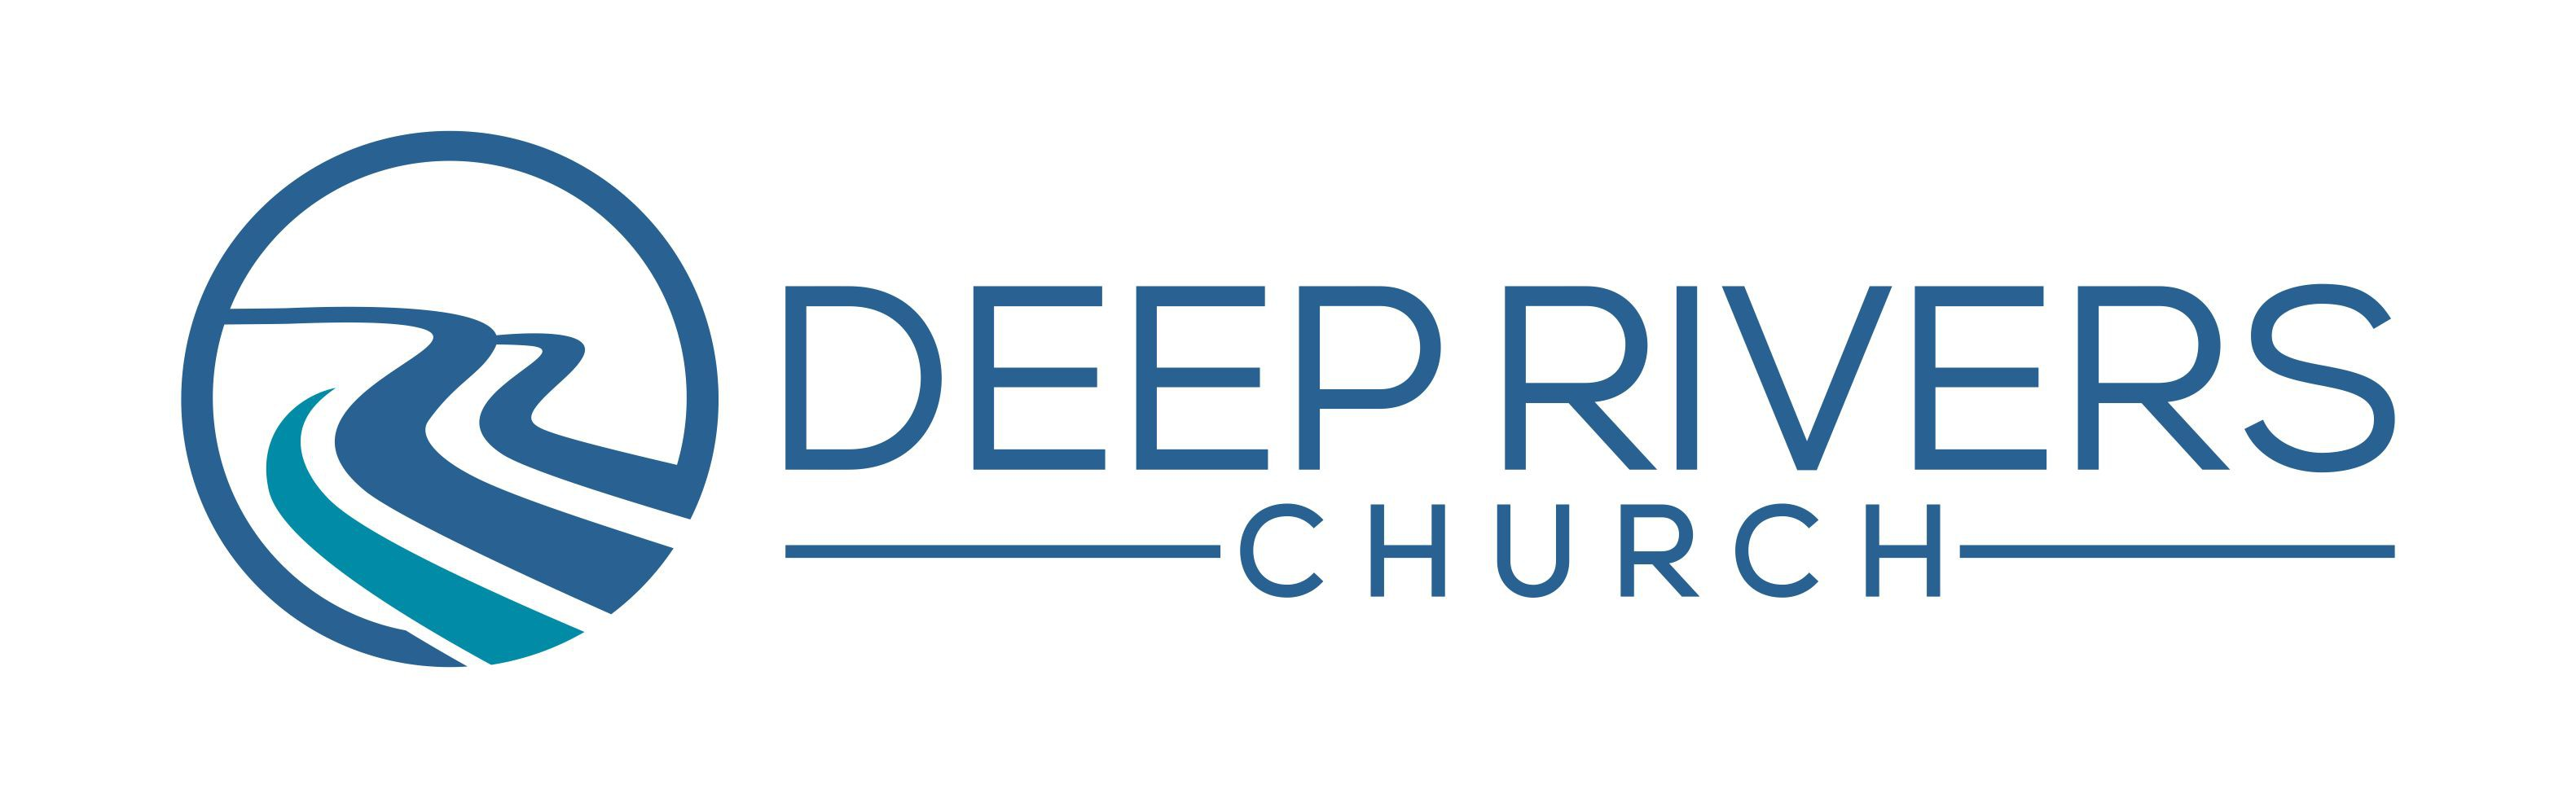 Design A Dynamic Brand Identity For Deep Rivers Church Startup